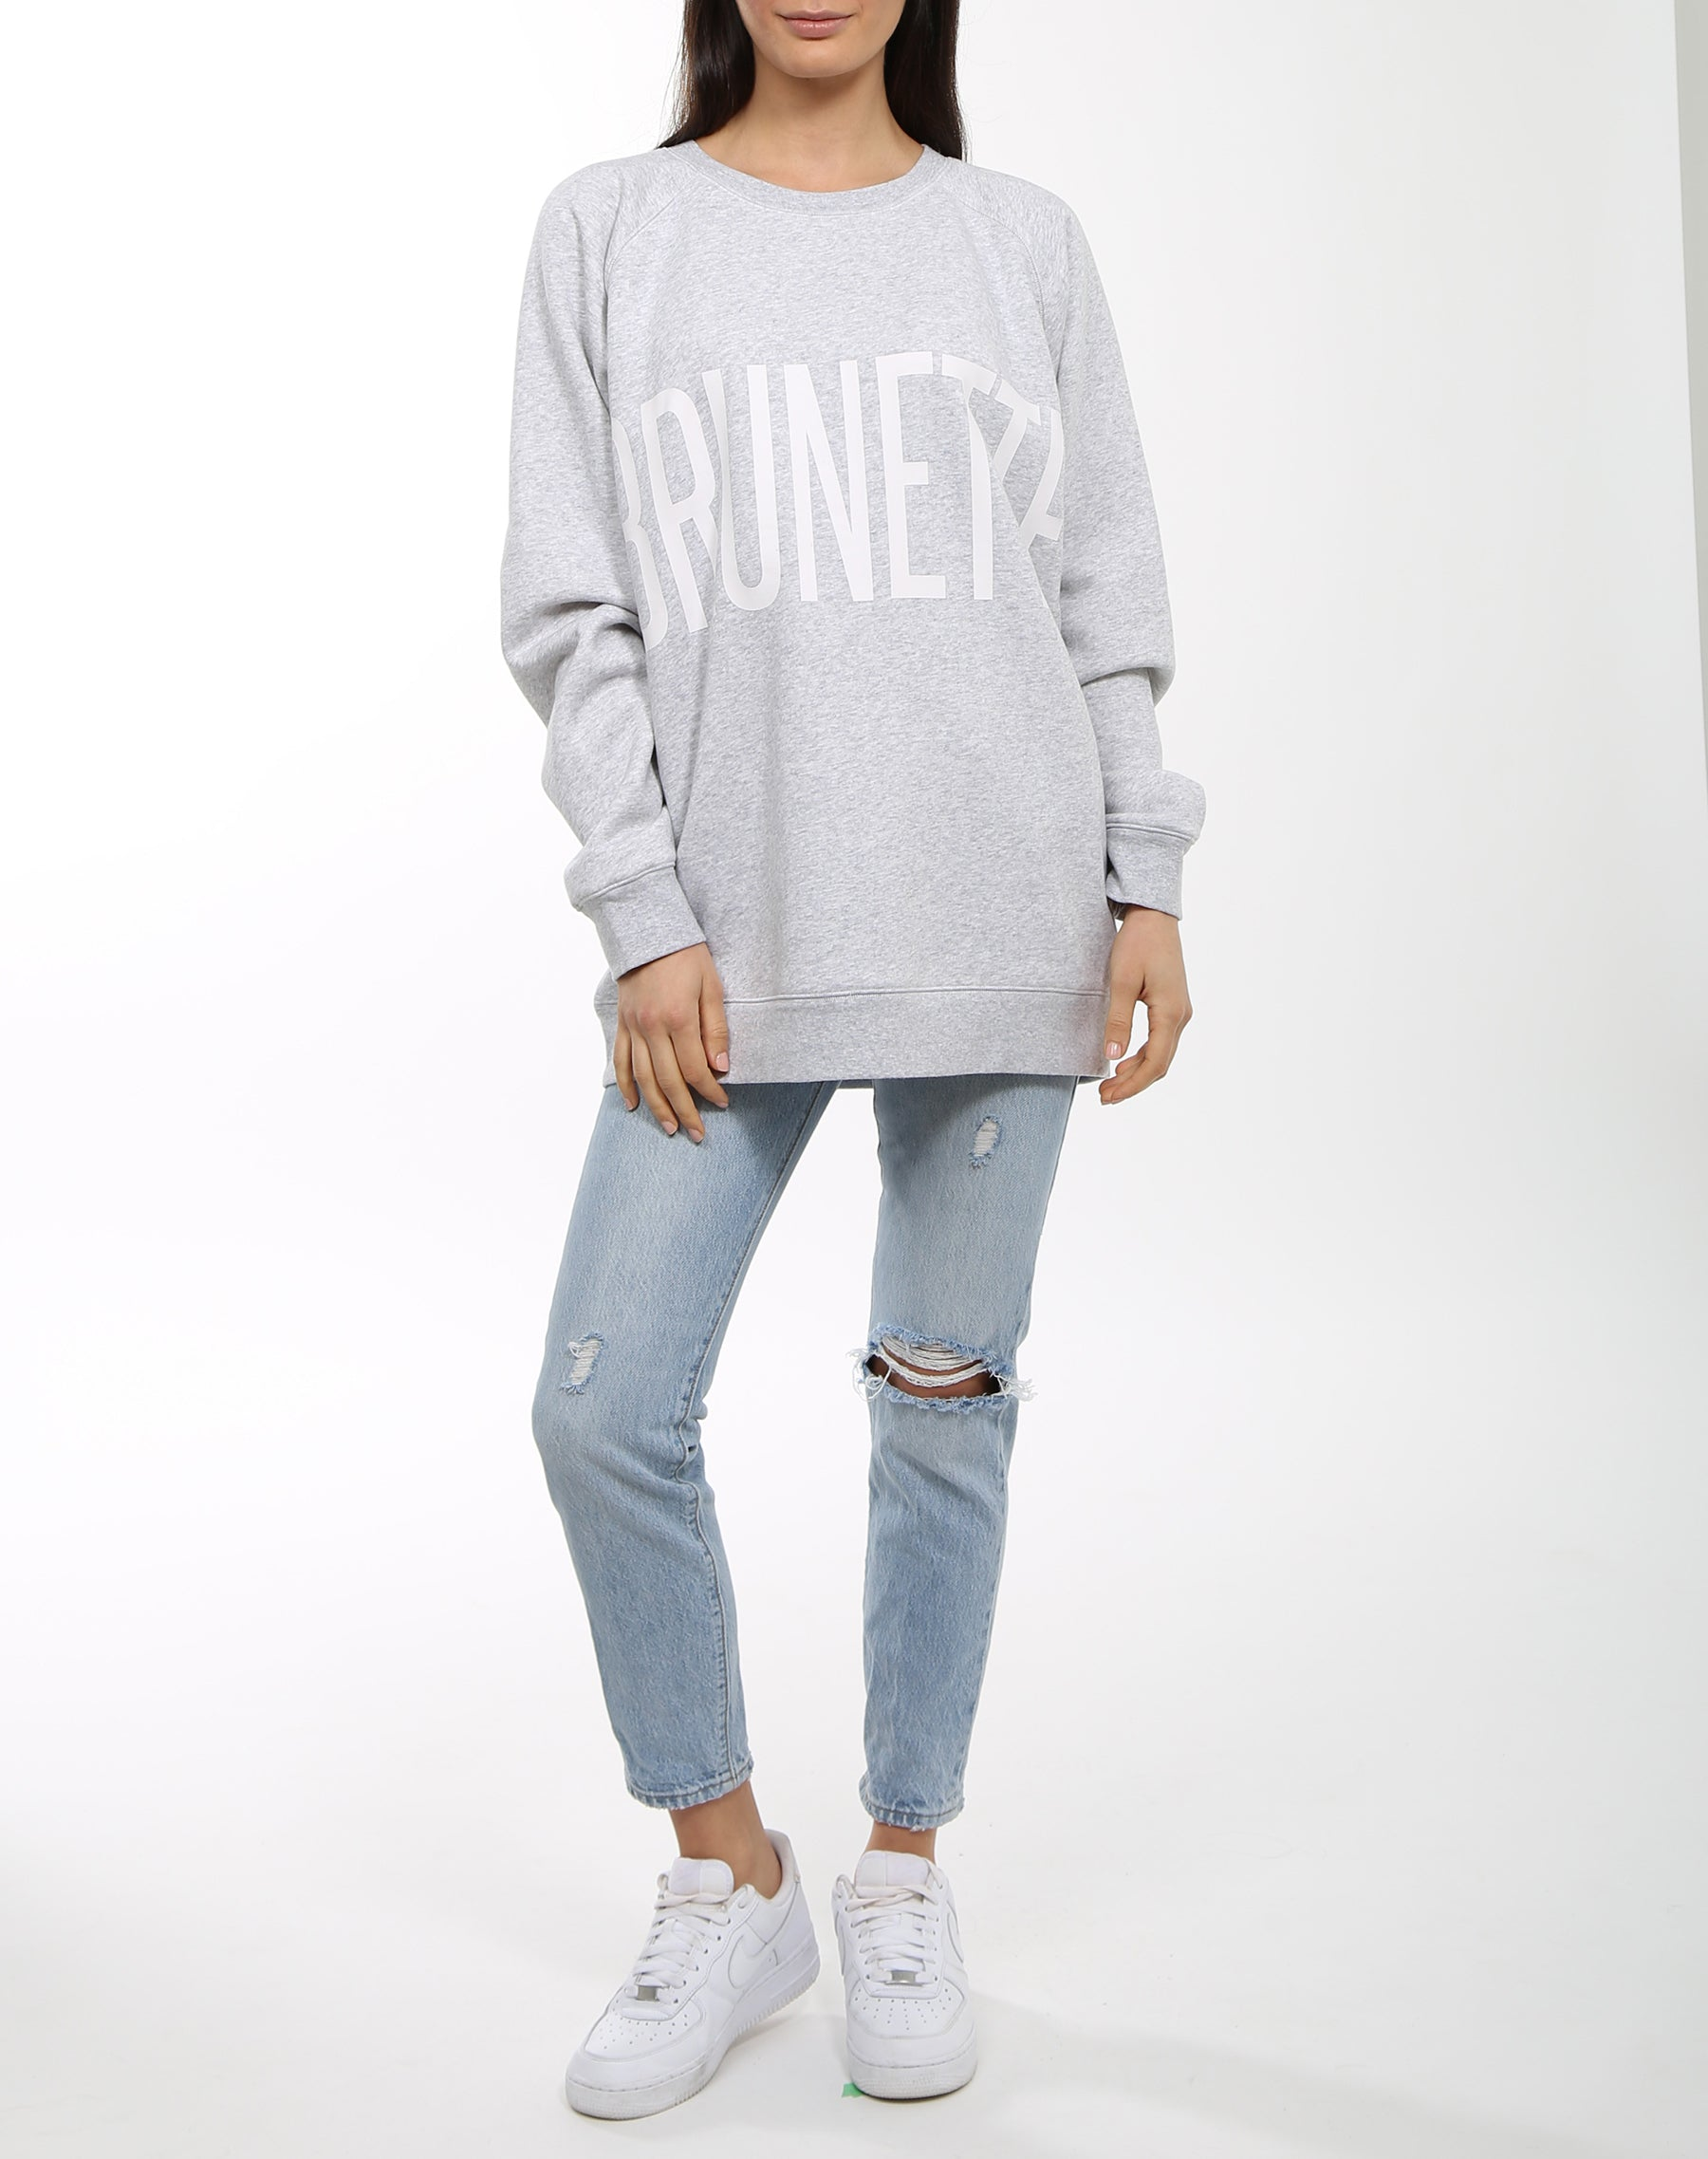 Photo 3 of the Brunette big sister crew neck sweatshirt in pebble grey by Brunette the Label.